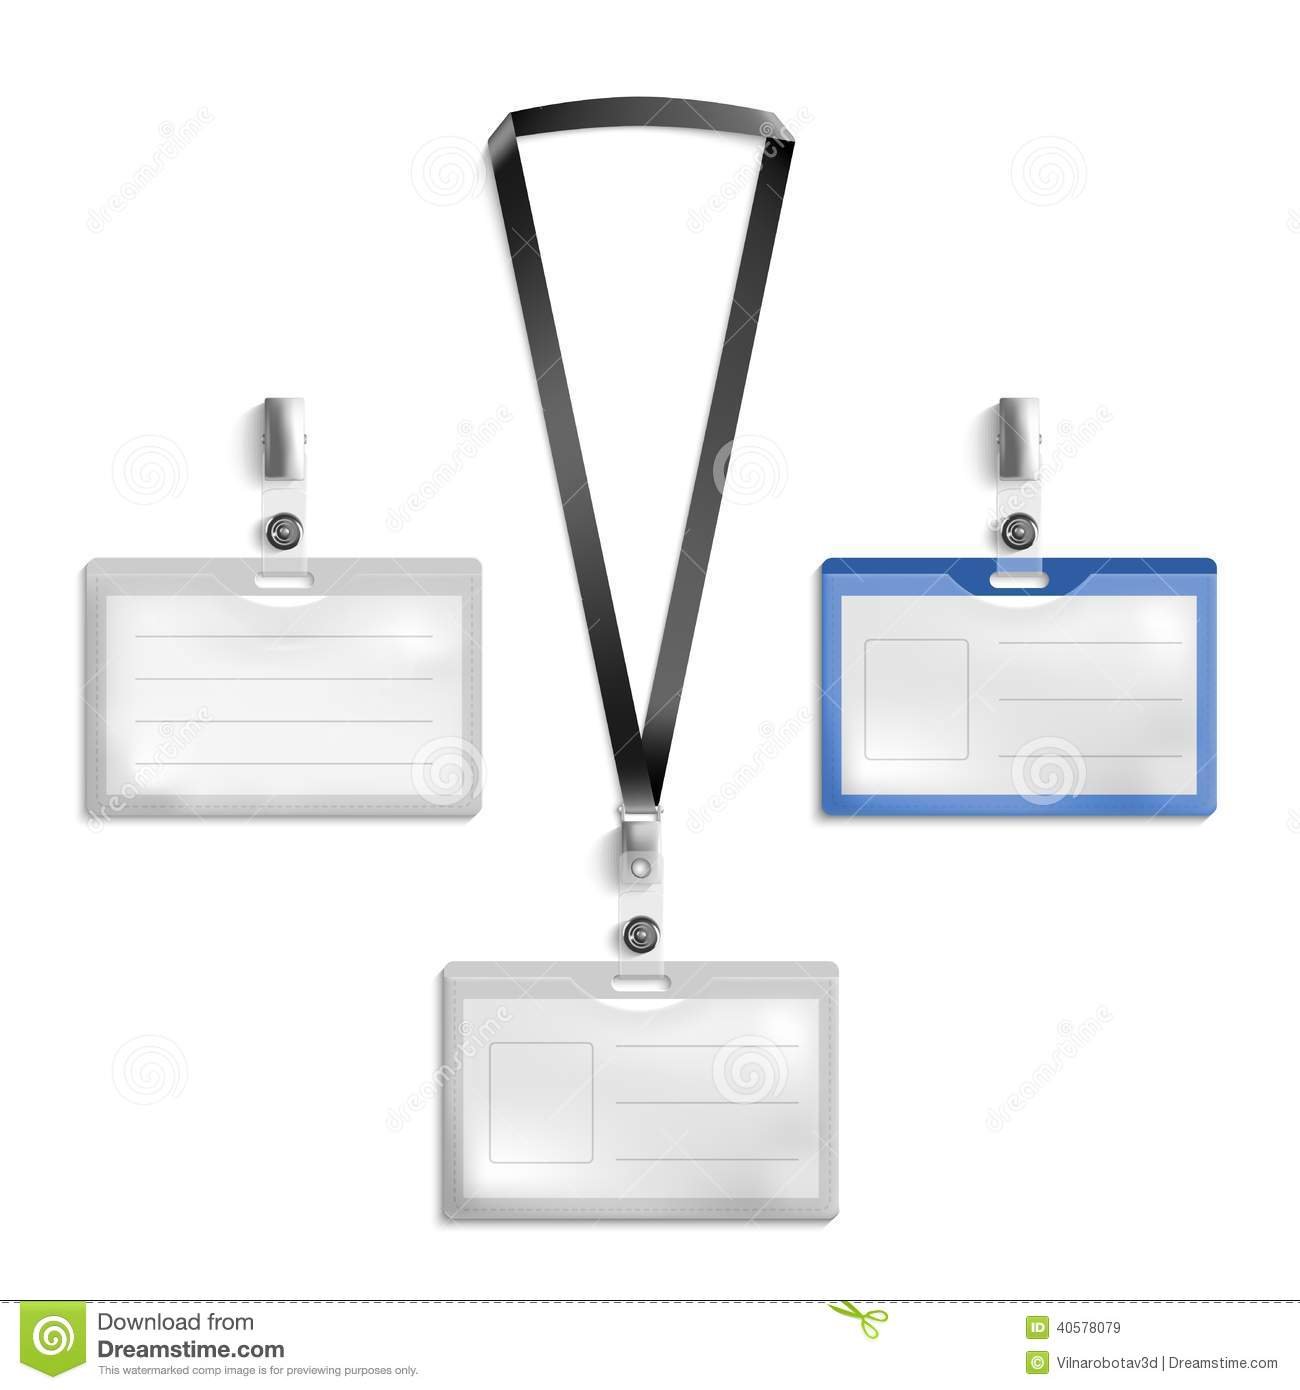 Tag Holder Stock Vector Illustration Of Identity Identification - Free lanyard template